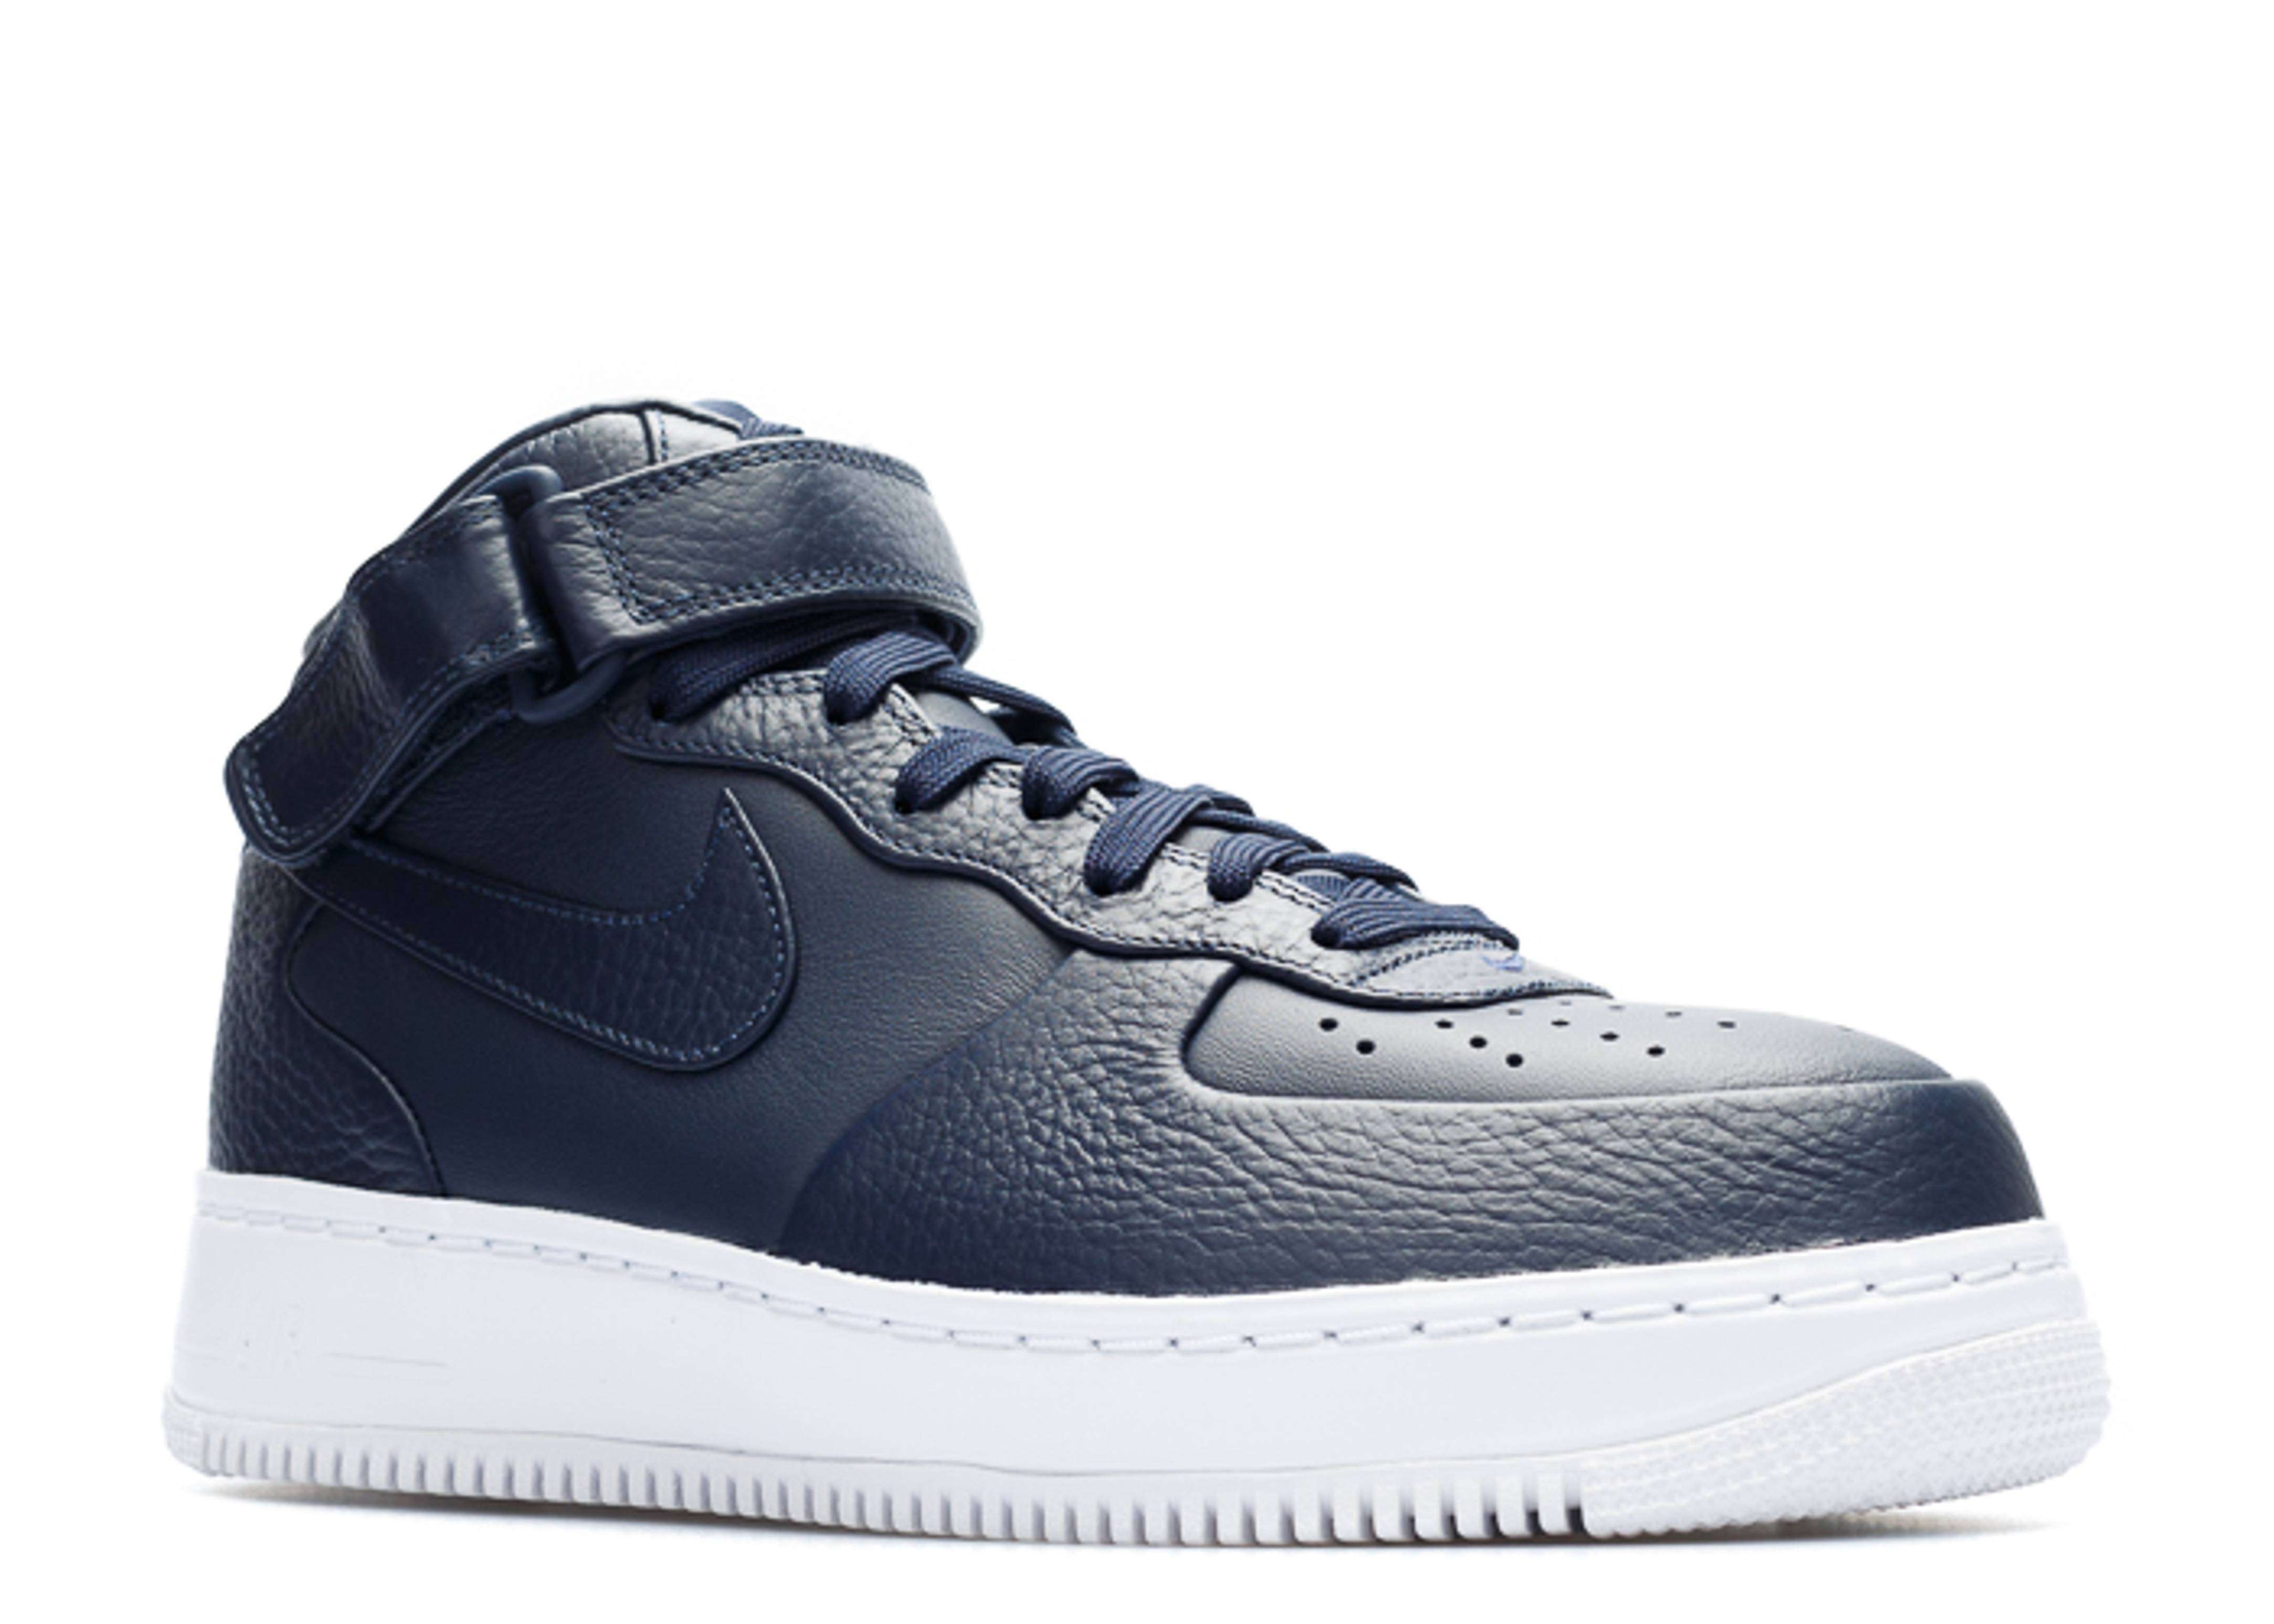 Nike Nikelab Air Force 1 Mid Obsidian Obsidian White 021475 on 819677